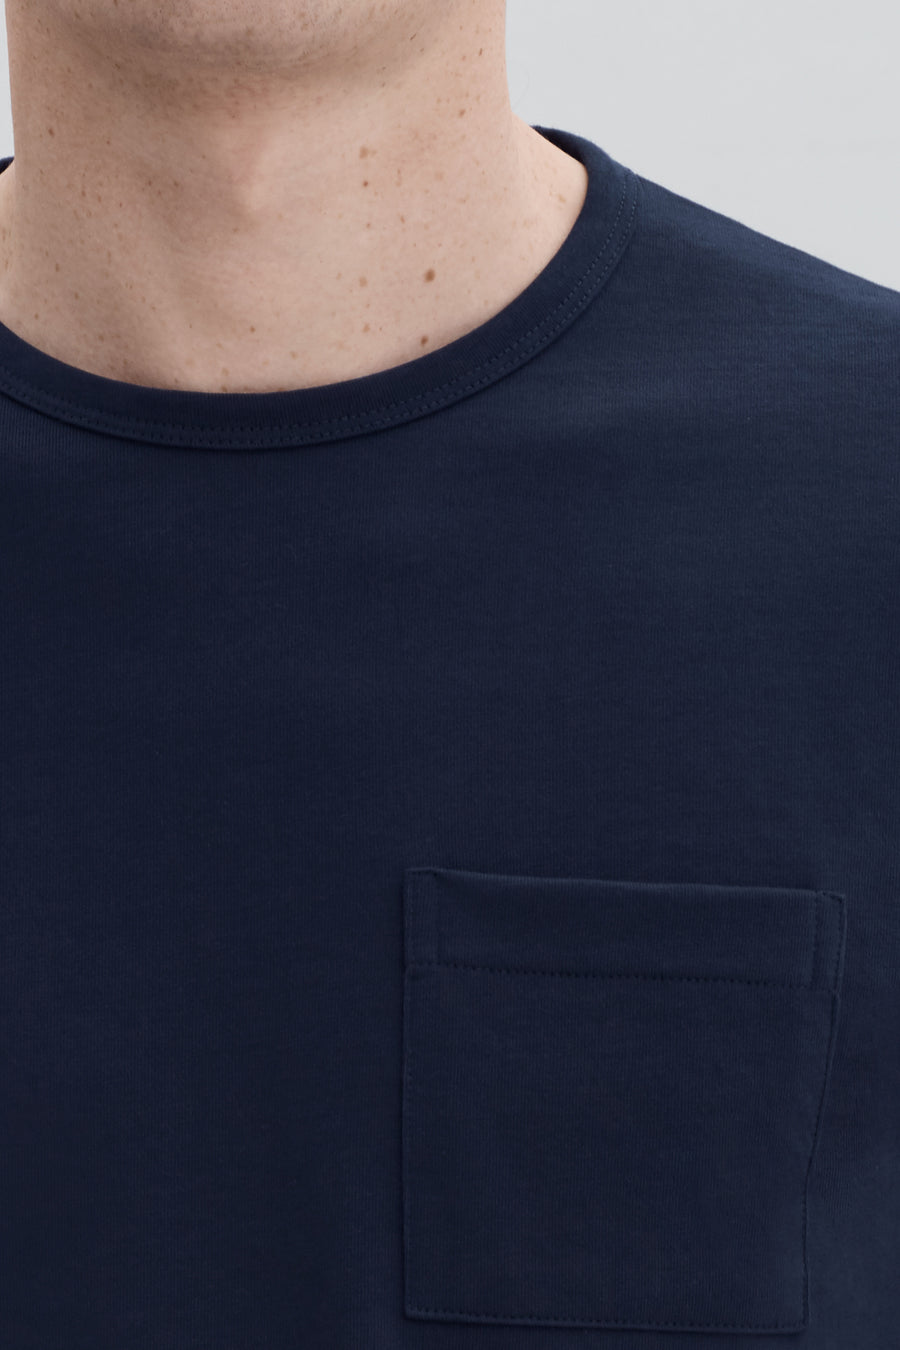 HW Pocket Tee L/S - Dark Navy